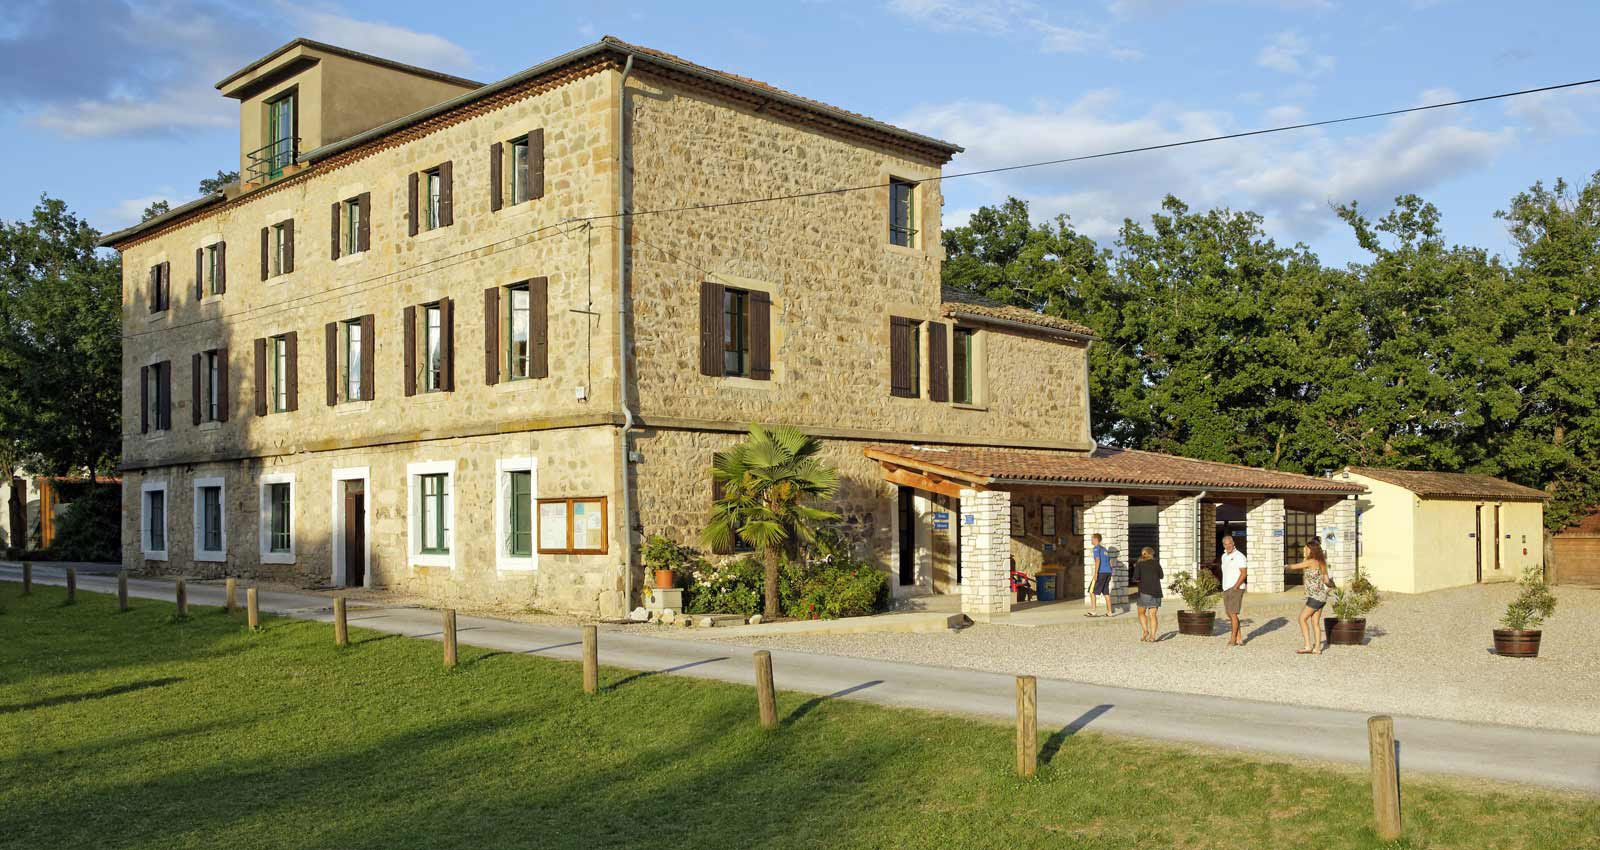 Family Activity Adventure Holidays In France At Pgl